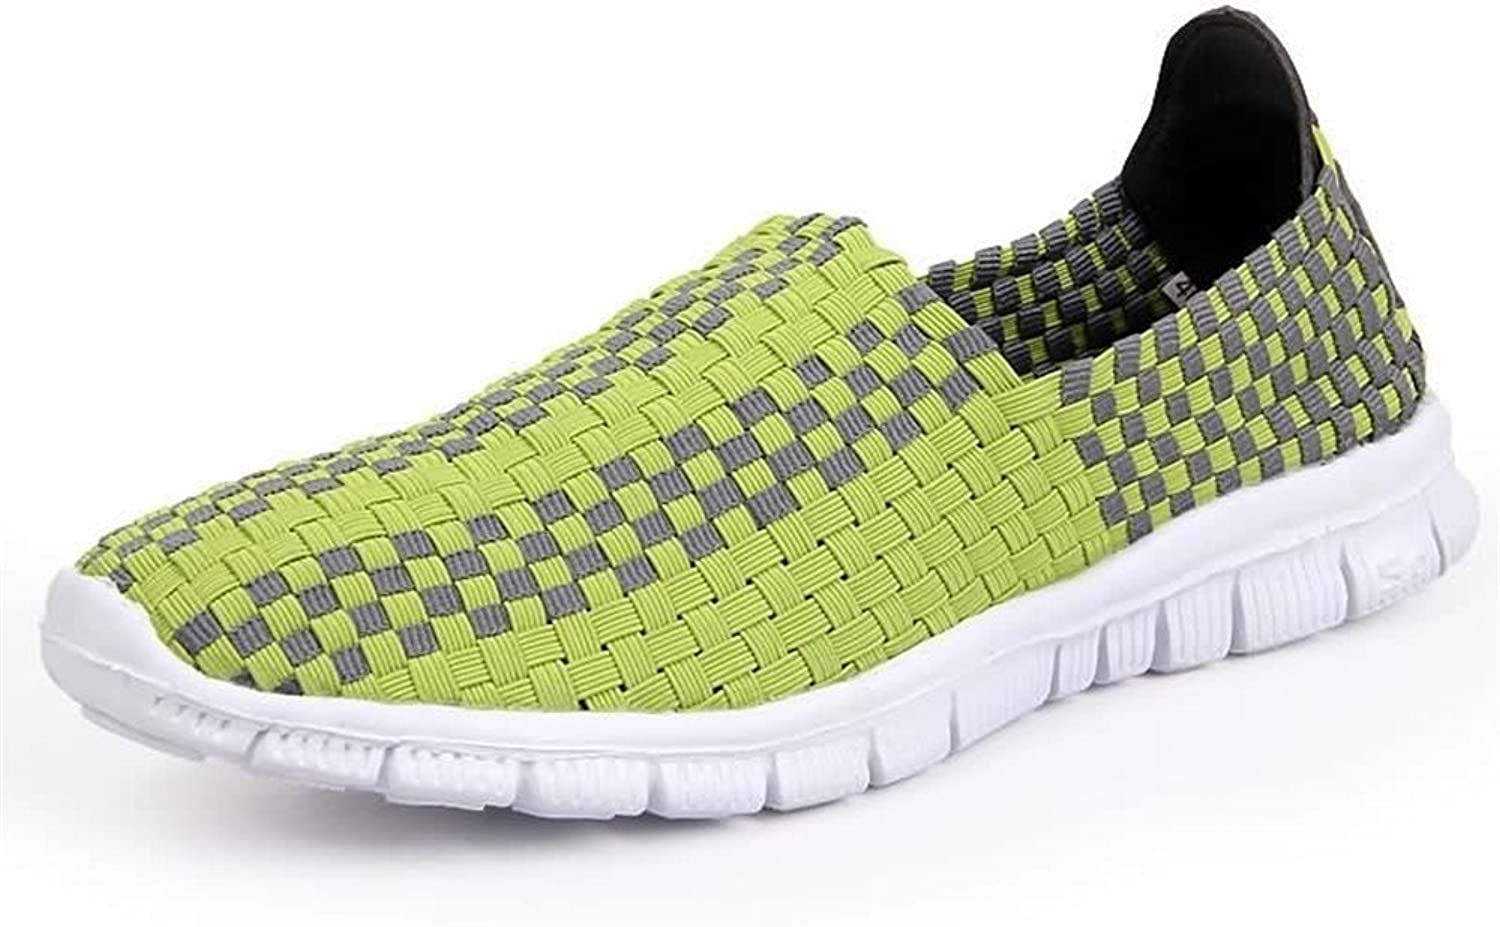 Hilotu Women's and Men's Camouflage Breathable Athletic shoes Grid Pattern Slip On Splice Vamp Leisure Fashion Sneaker Wild Breathable Hand-Knitted shoes (color   Green, Size   6 M US)